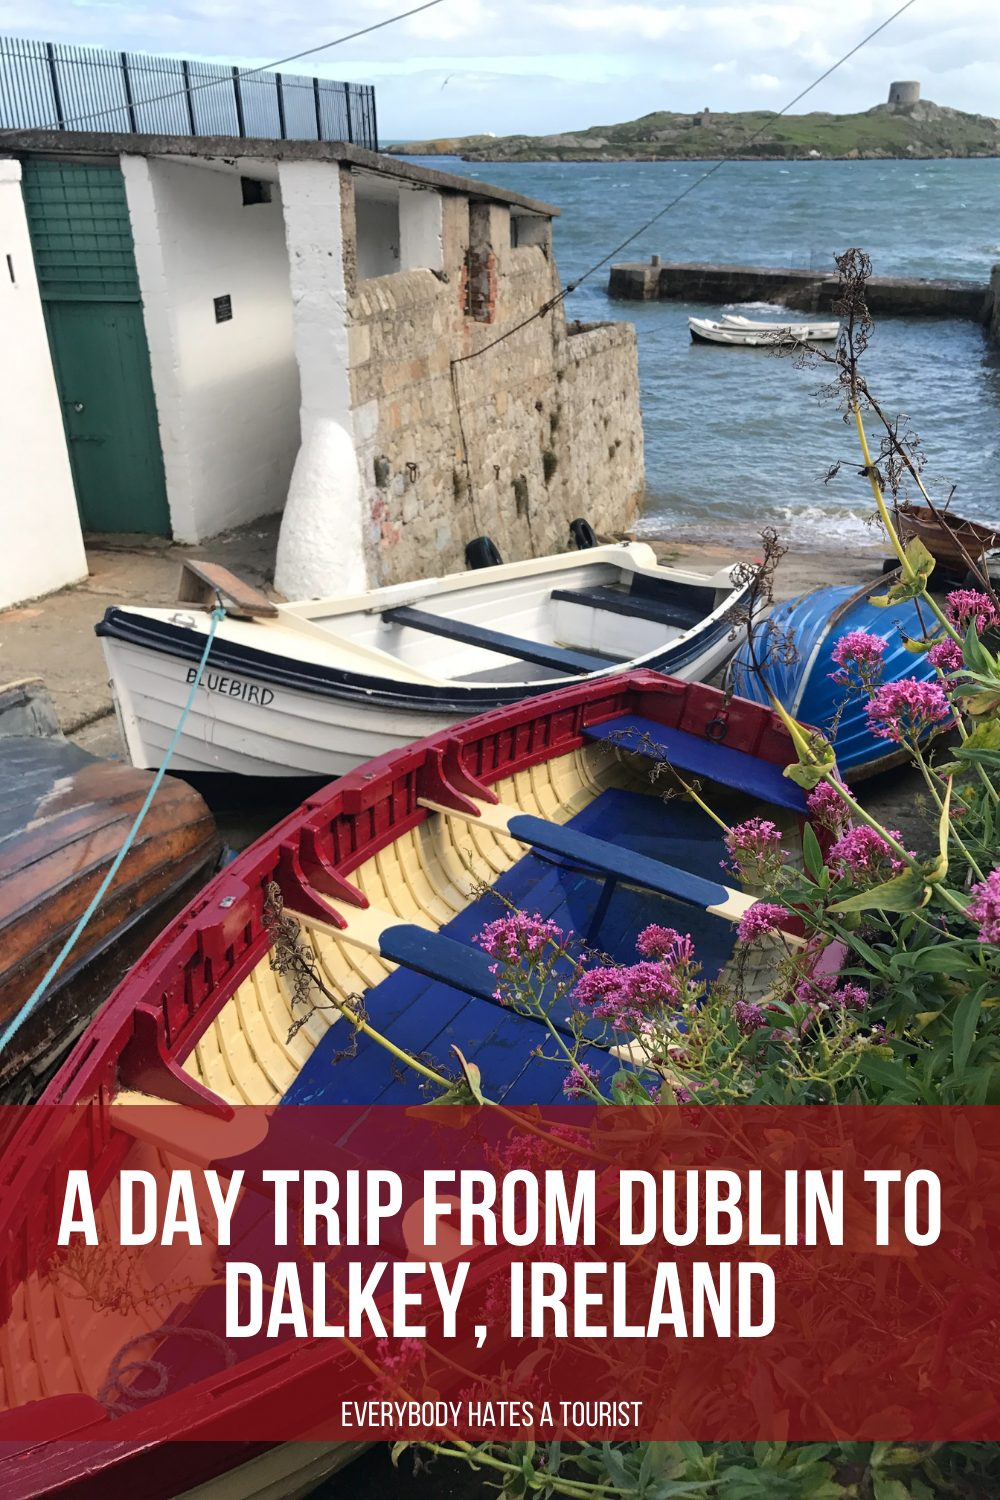 A Day Trip from Dublin to Dalkey Ireland - A day trip from Dublin to Dalkey, Ireland